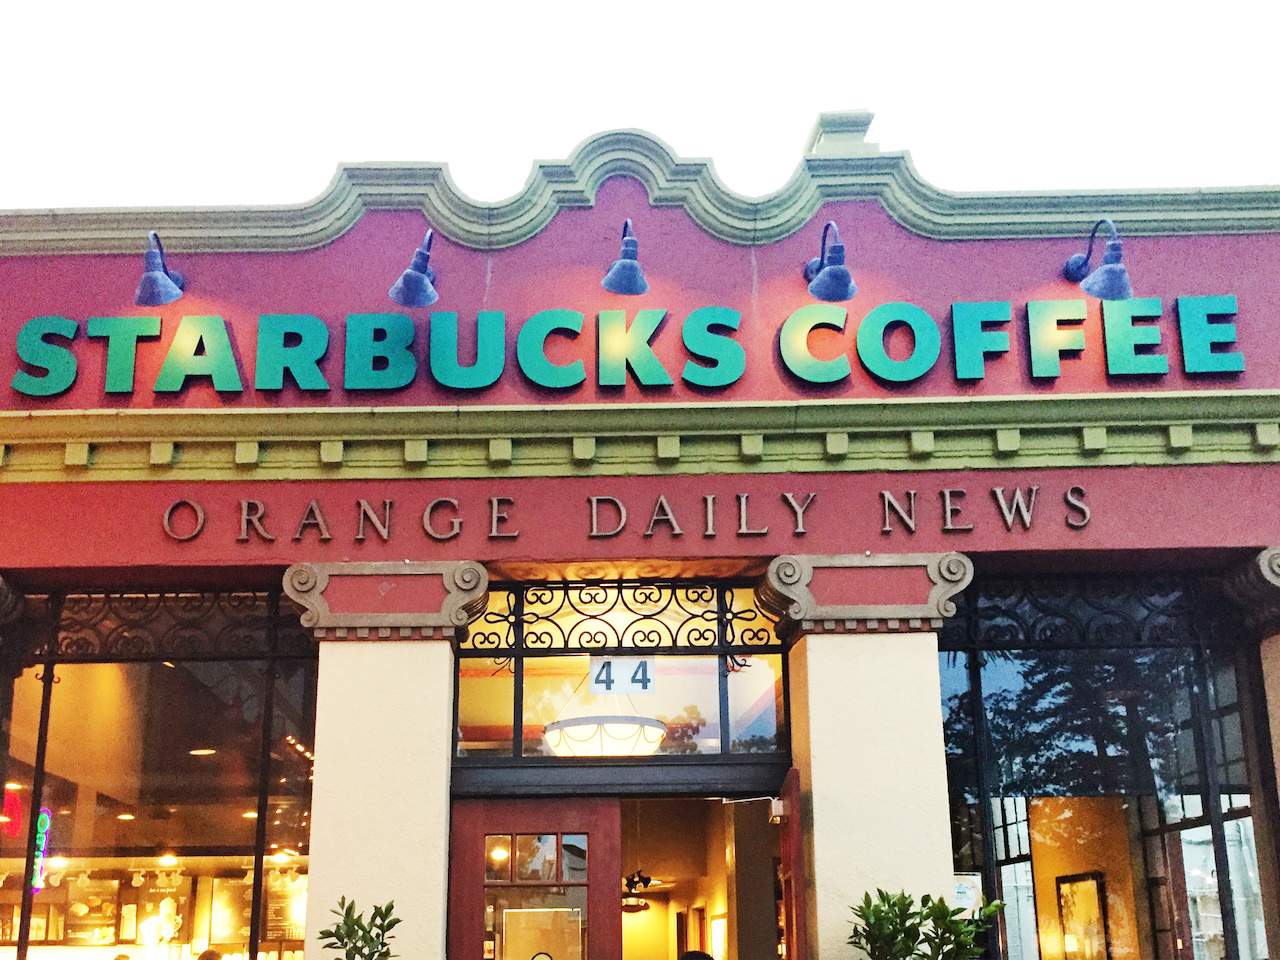 Starbucks has two vintage locations on the Old Towne Orange plaza, including this space in the old Orange Daily News building.